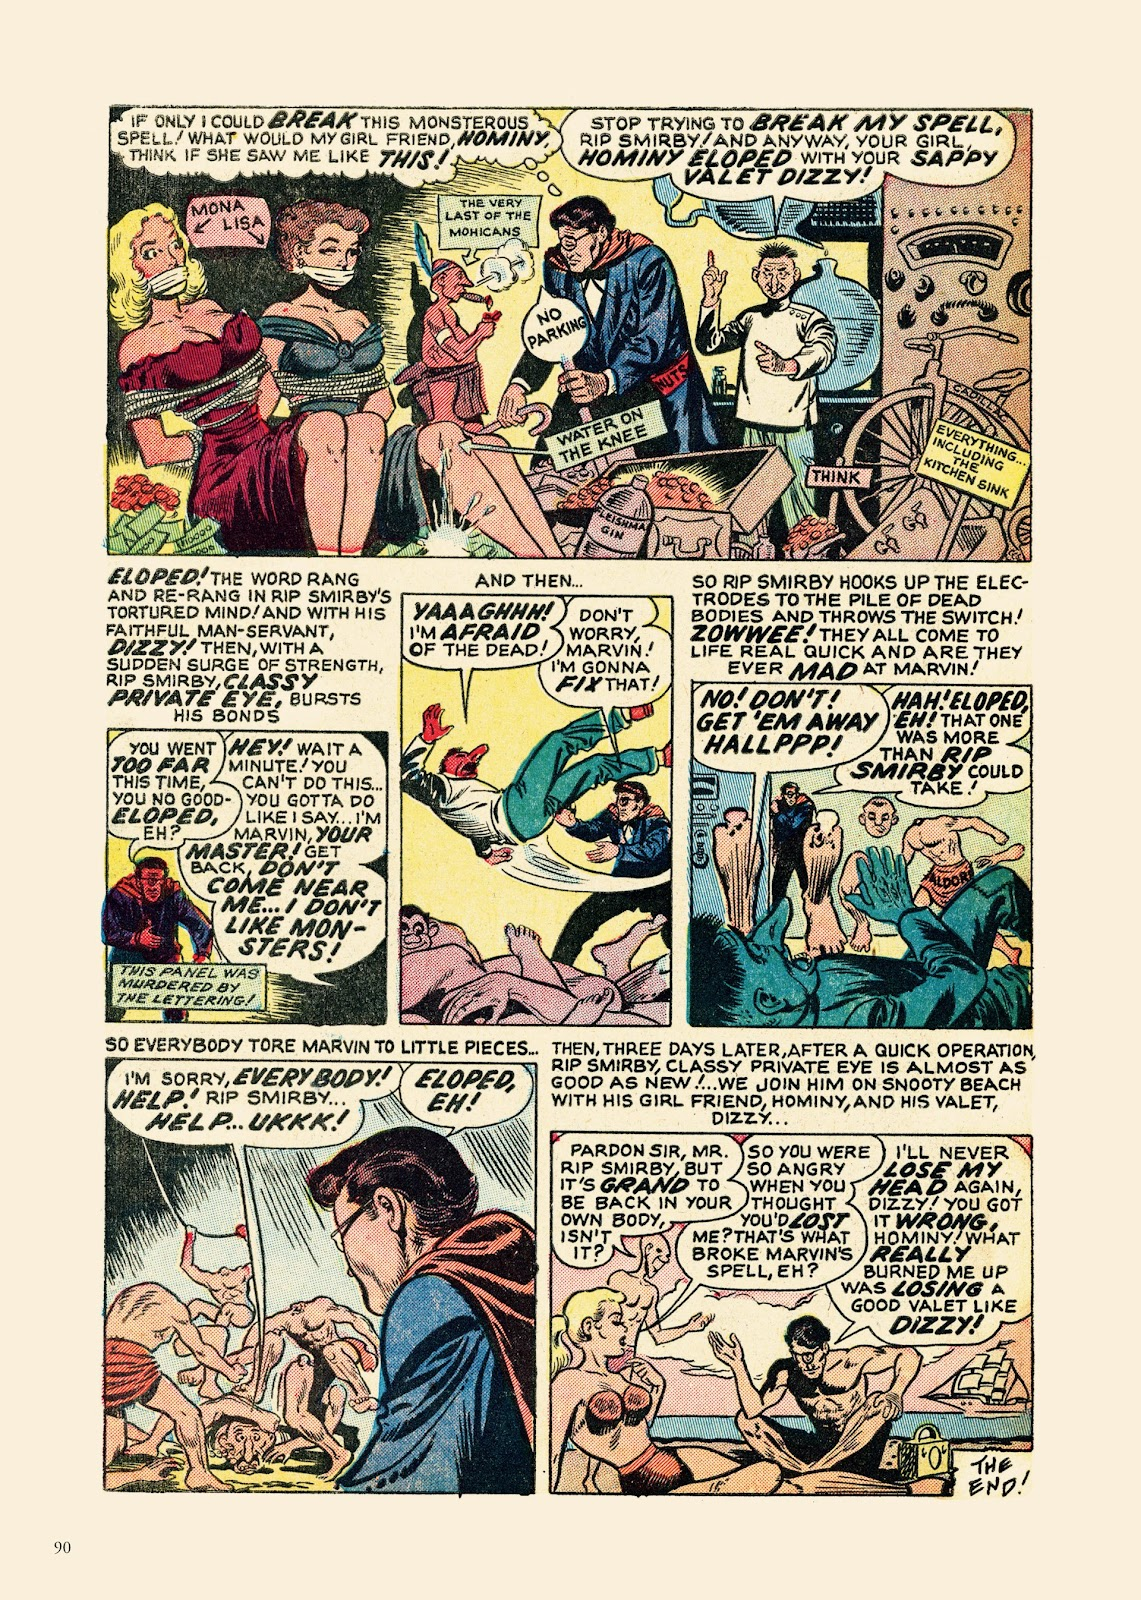 Read online Sincerest Form of Parody: The Best 1950s MAD-Inspired Satirical Comics comic -  Issue # TPB (Part 1) - 91